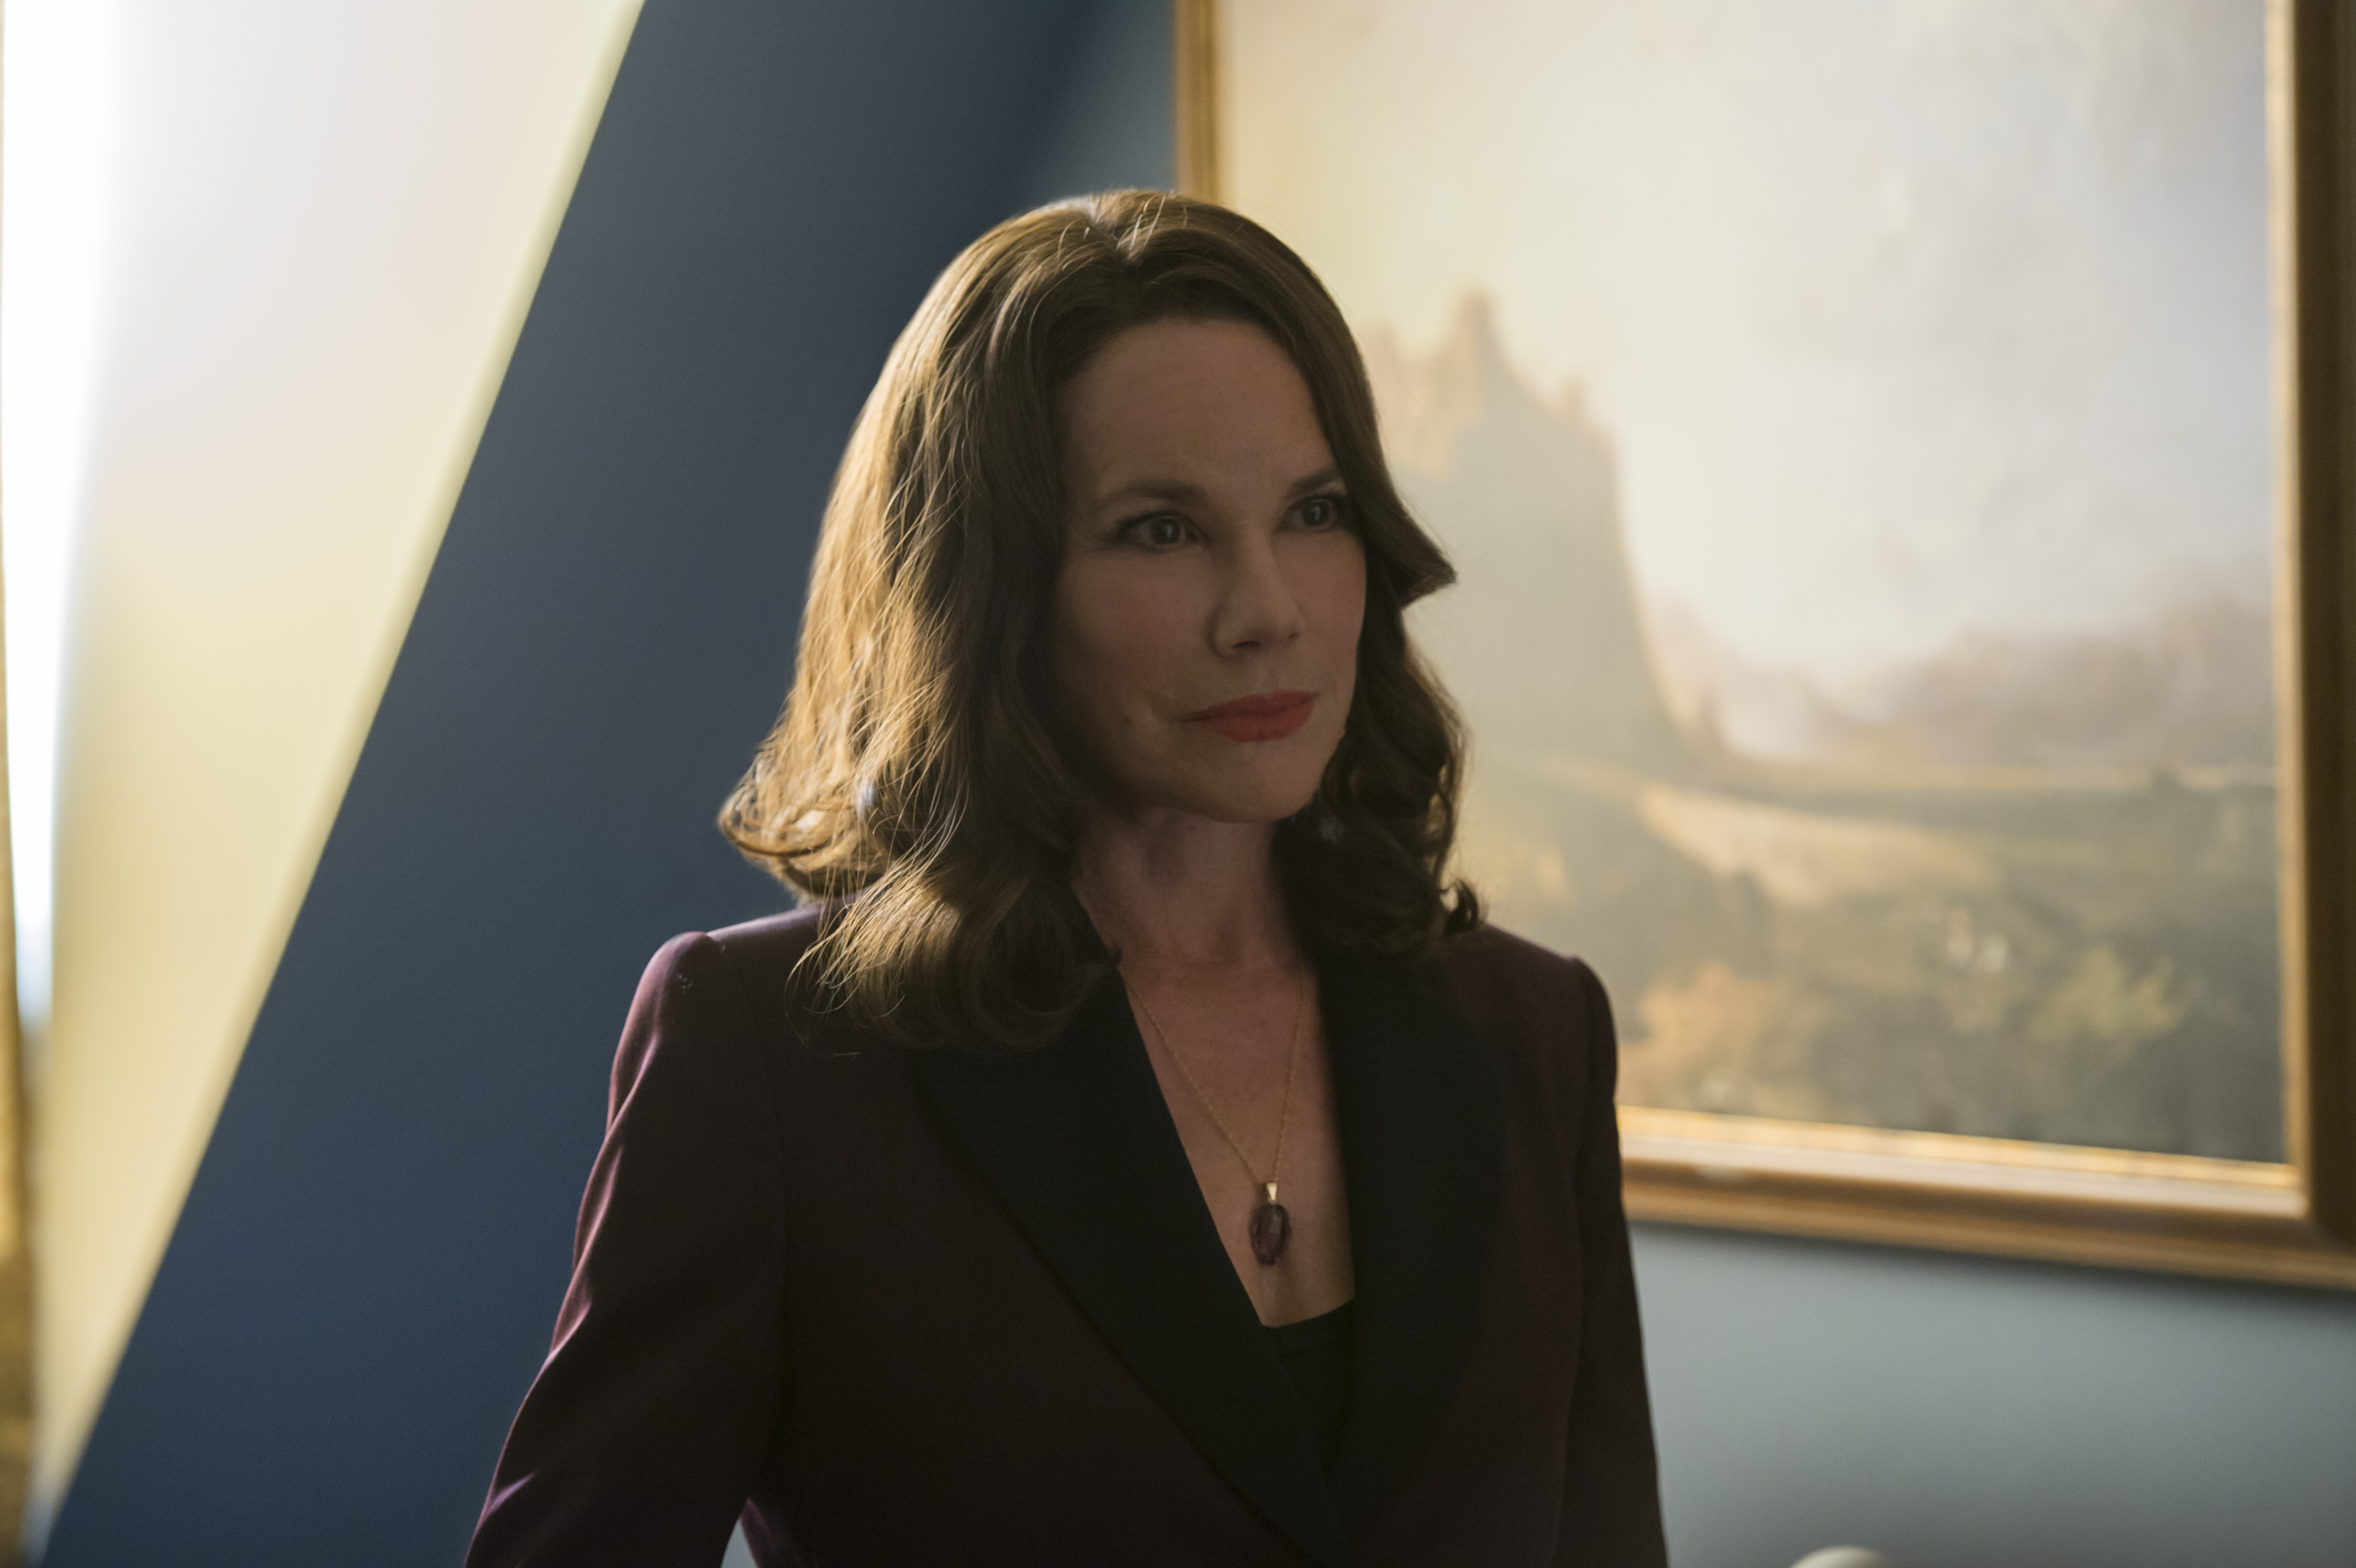 barbara_hershey_stars_in_aes_upcoming_drama_series_damien_premiering_in_march_2016